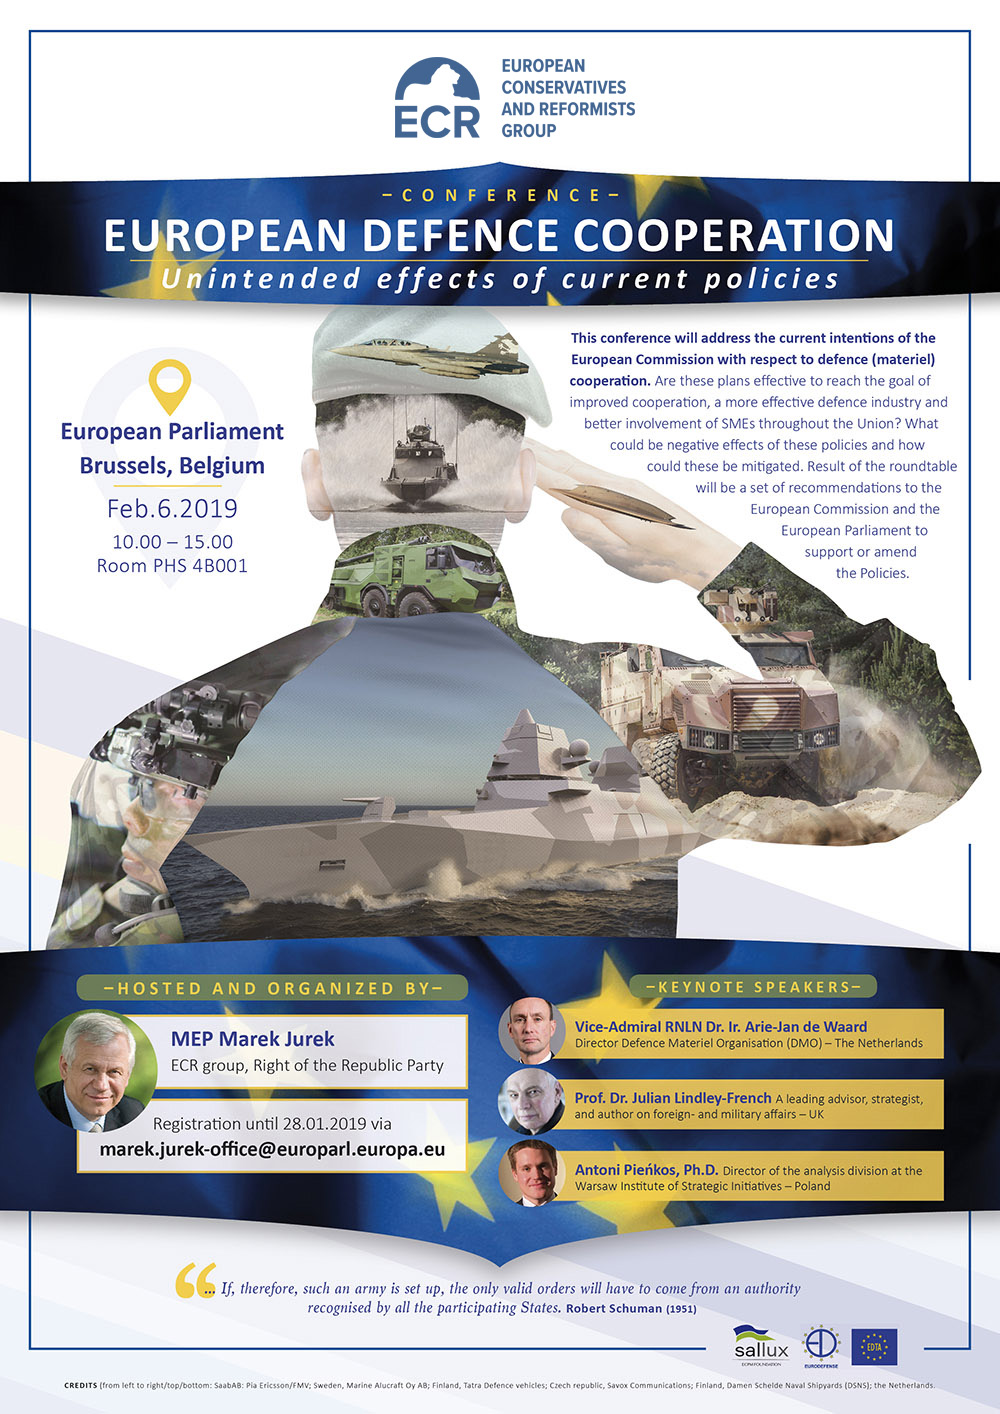 European Defence Cooperation Conference // ECR Group